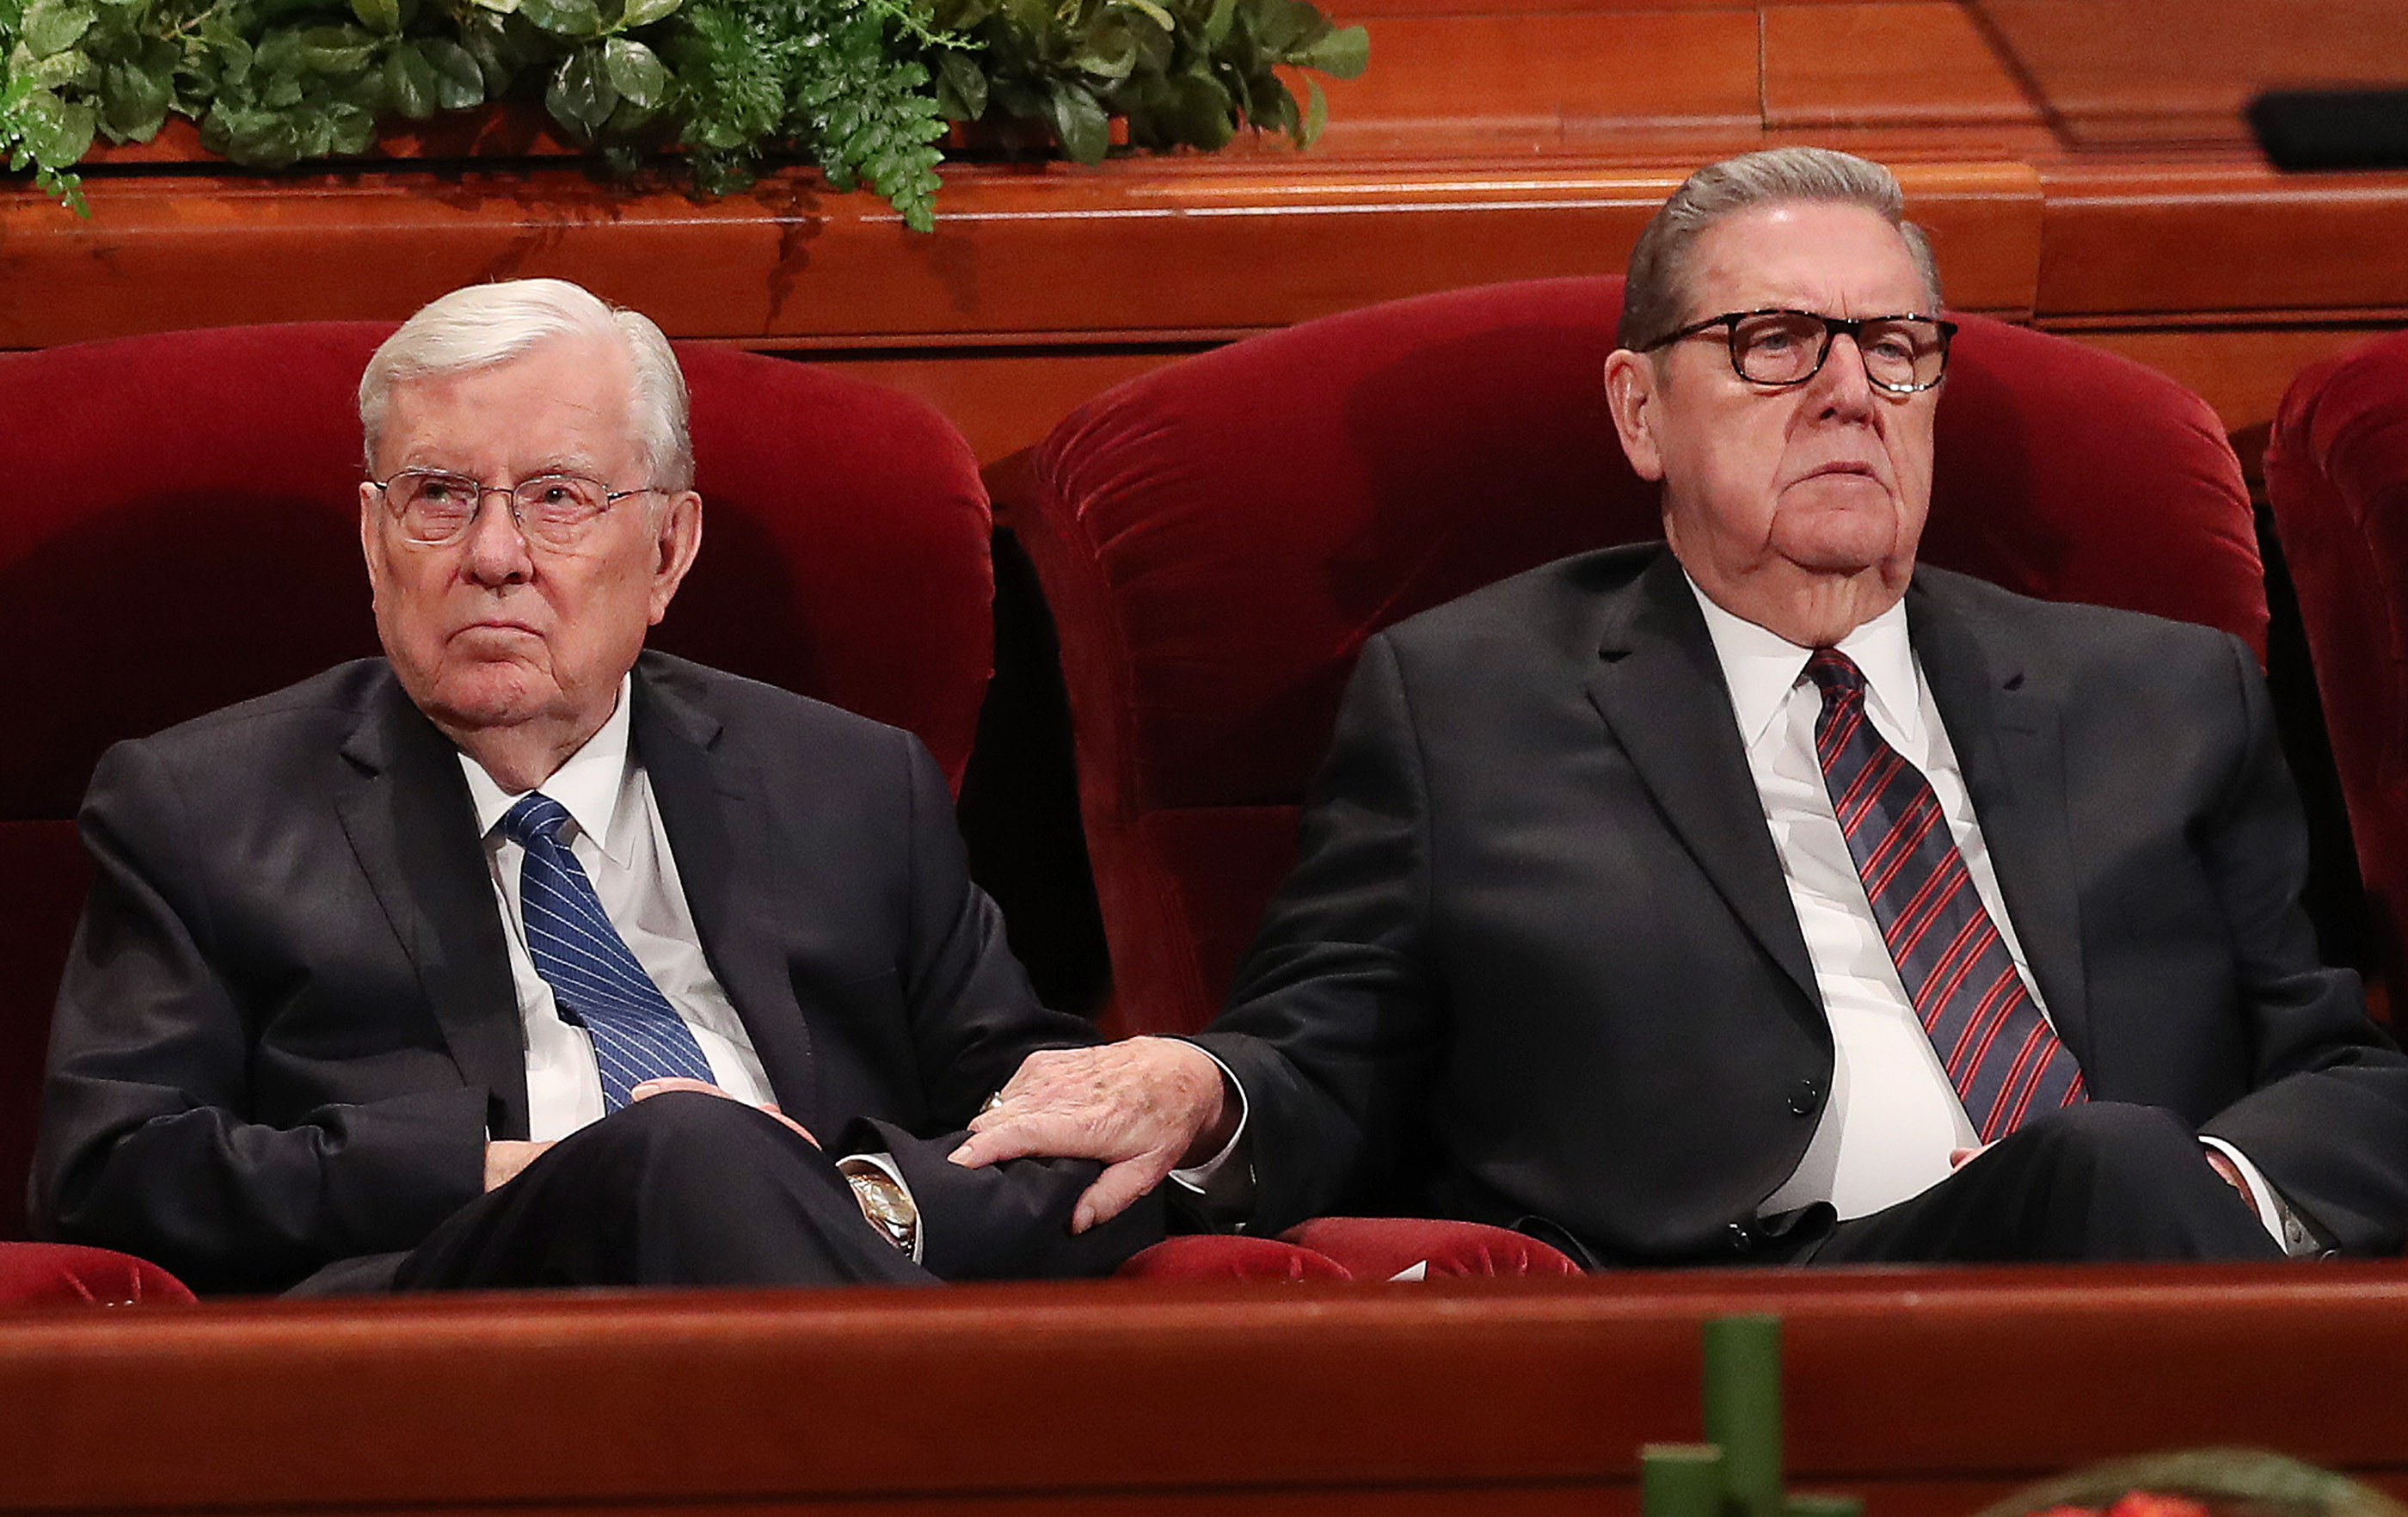 Elder Jeffrey R. Holland of The Church of Jesus Christ of Latter-day Saints' Quorum of the Twelve Apostles, right, holds the arm of Elder M. Russell Ballard of the Quorum of the Twelve Apostles during the Saturday morning session of the 188th Semiannual General Conference of The Church of Jesus Christ of Latter-day Saints in the Conference Center in Salt Lake City on Saturday, Oct. 6, 2018.